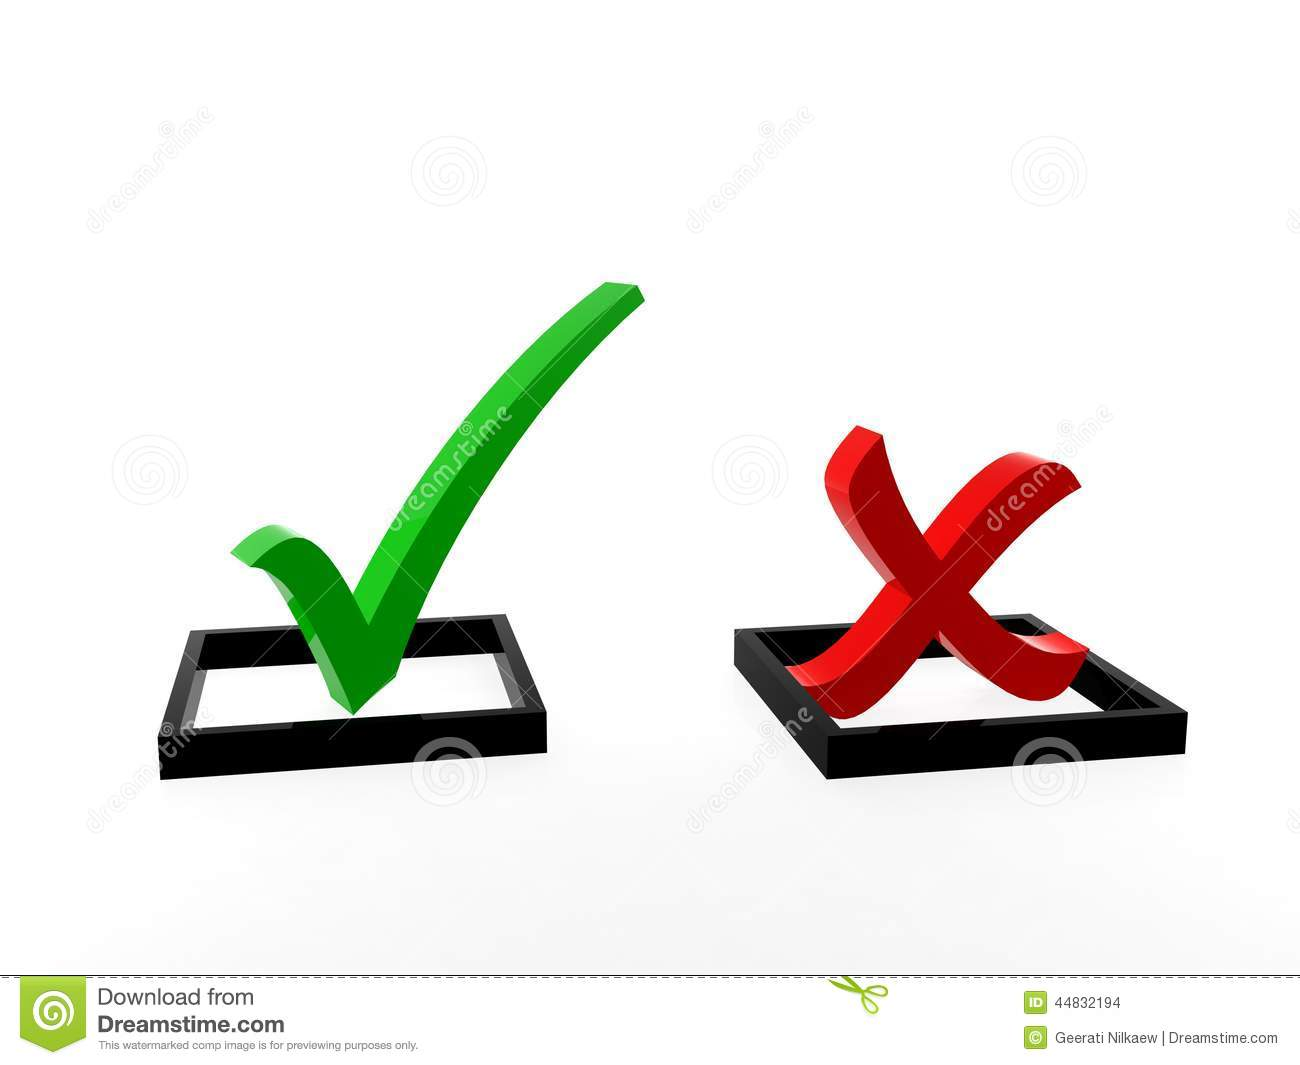 Right And Wrong Symbol wrong sign icon symbol stock photos, images ...